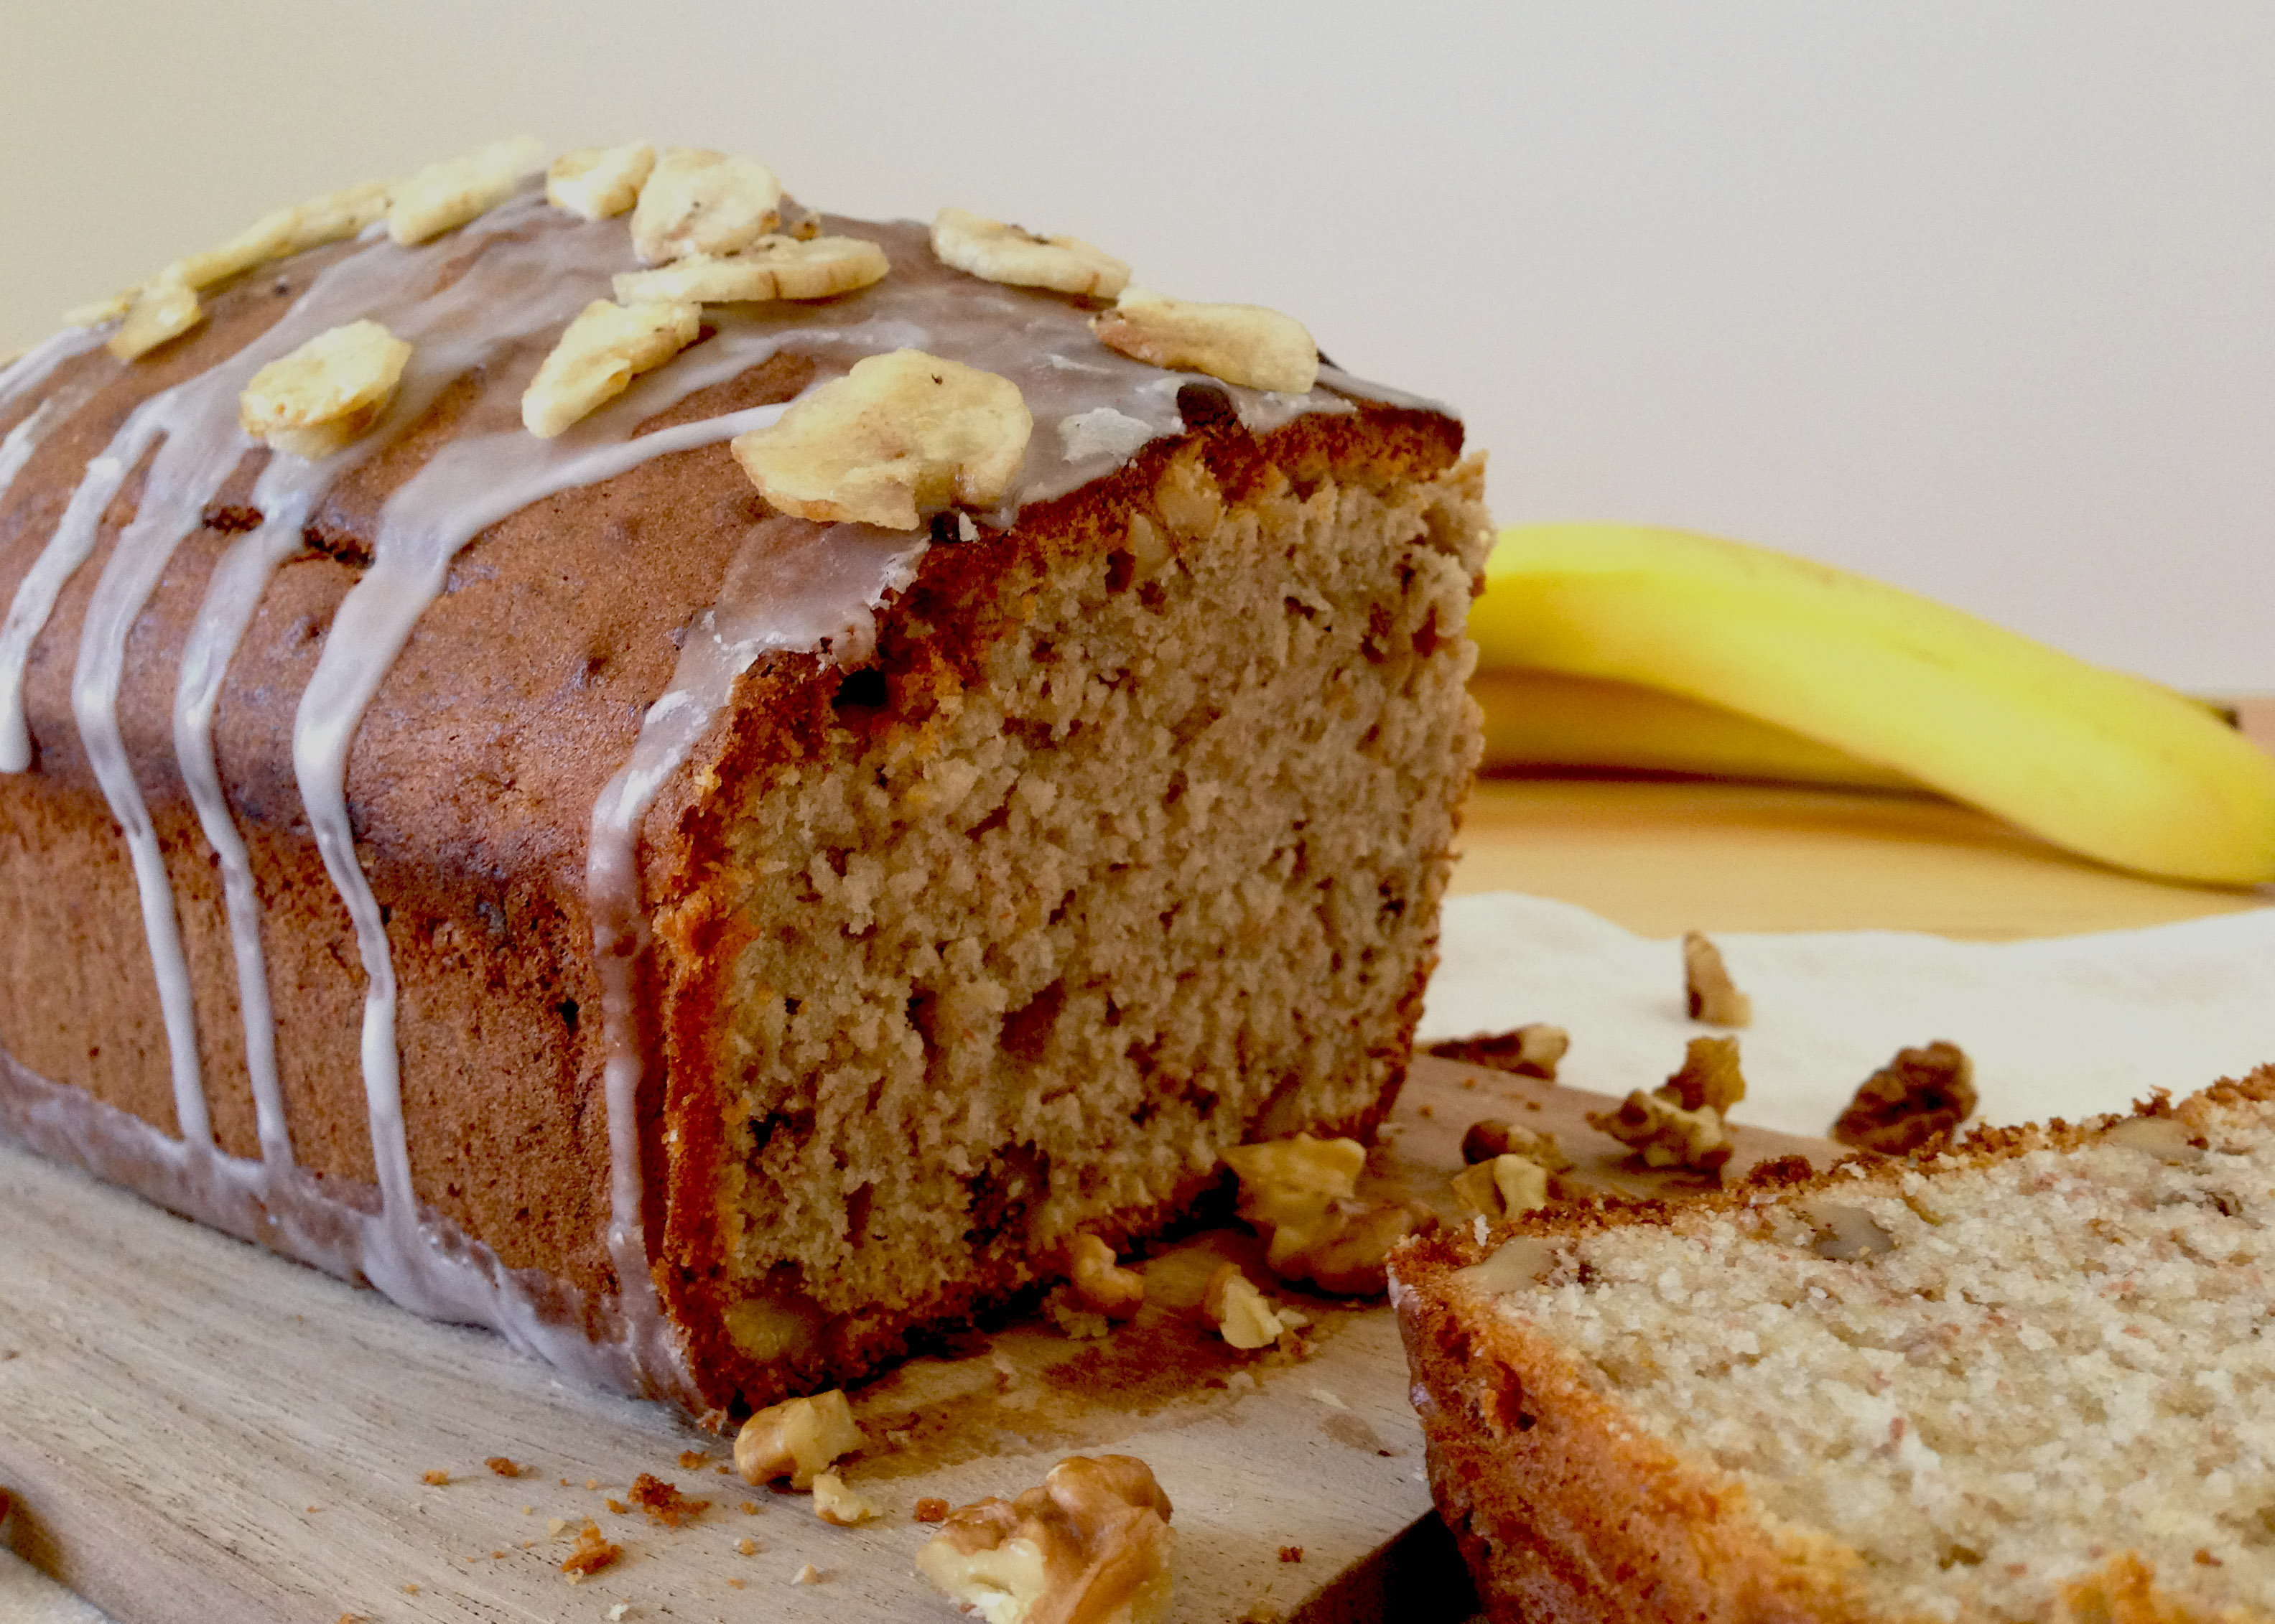 Sweet Banana and Walnut Loaf